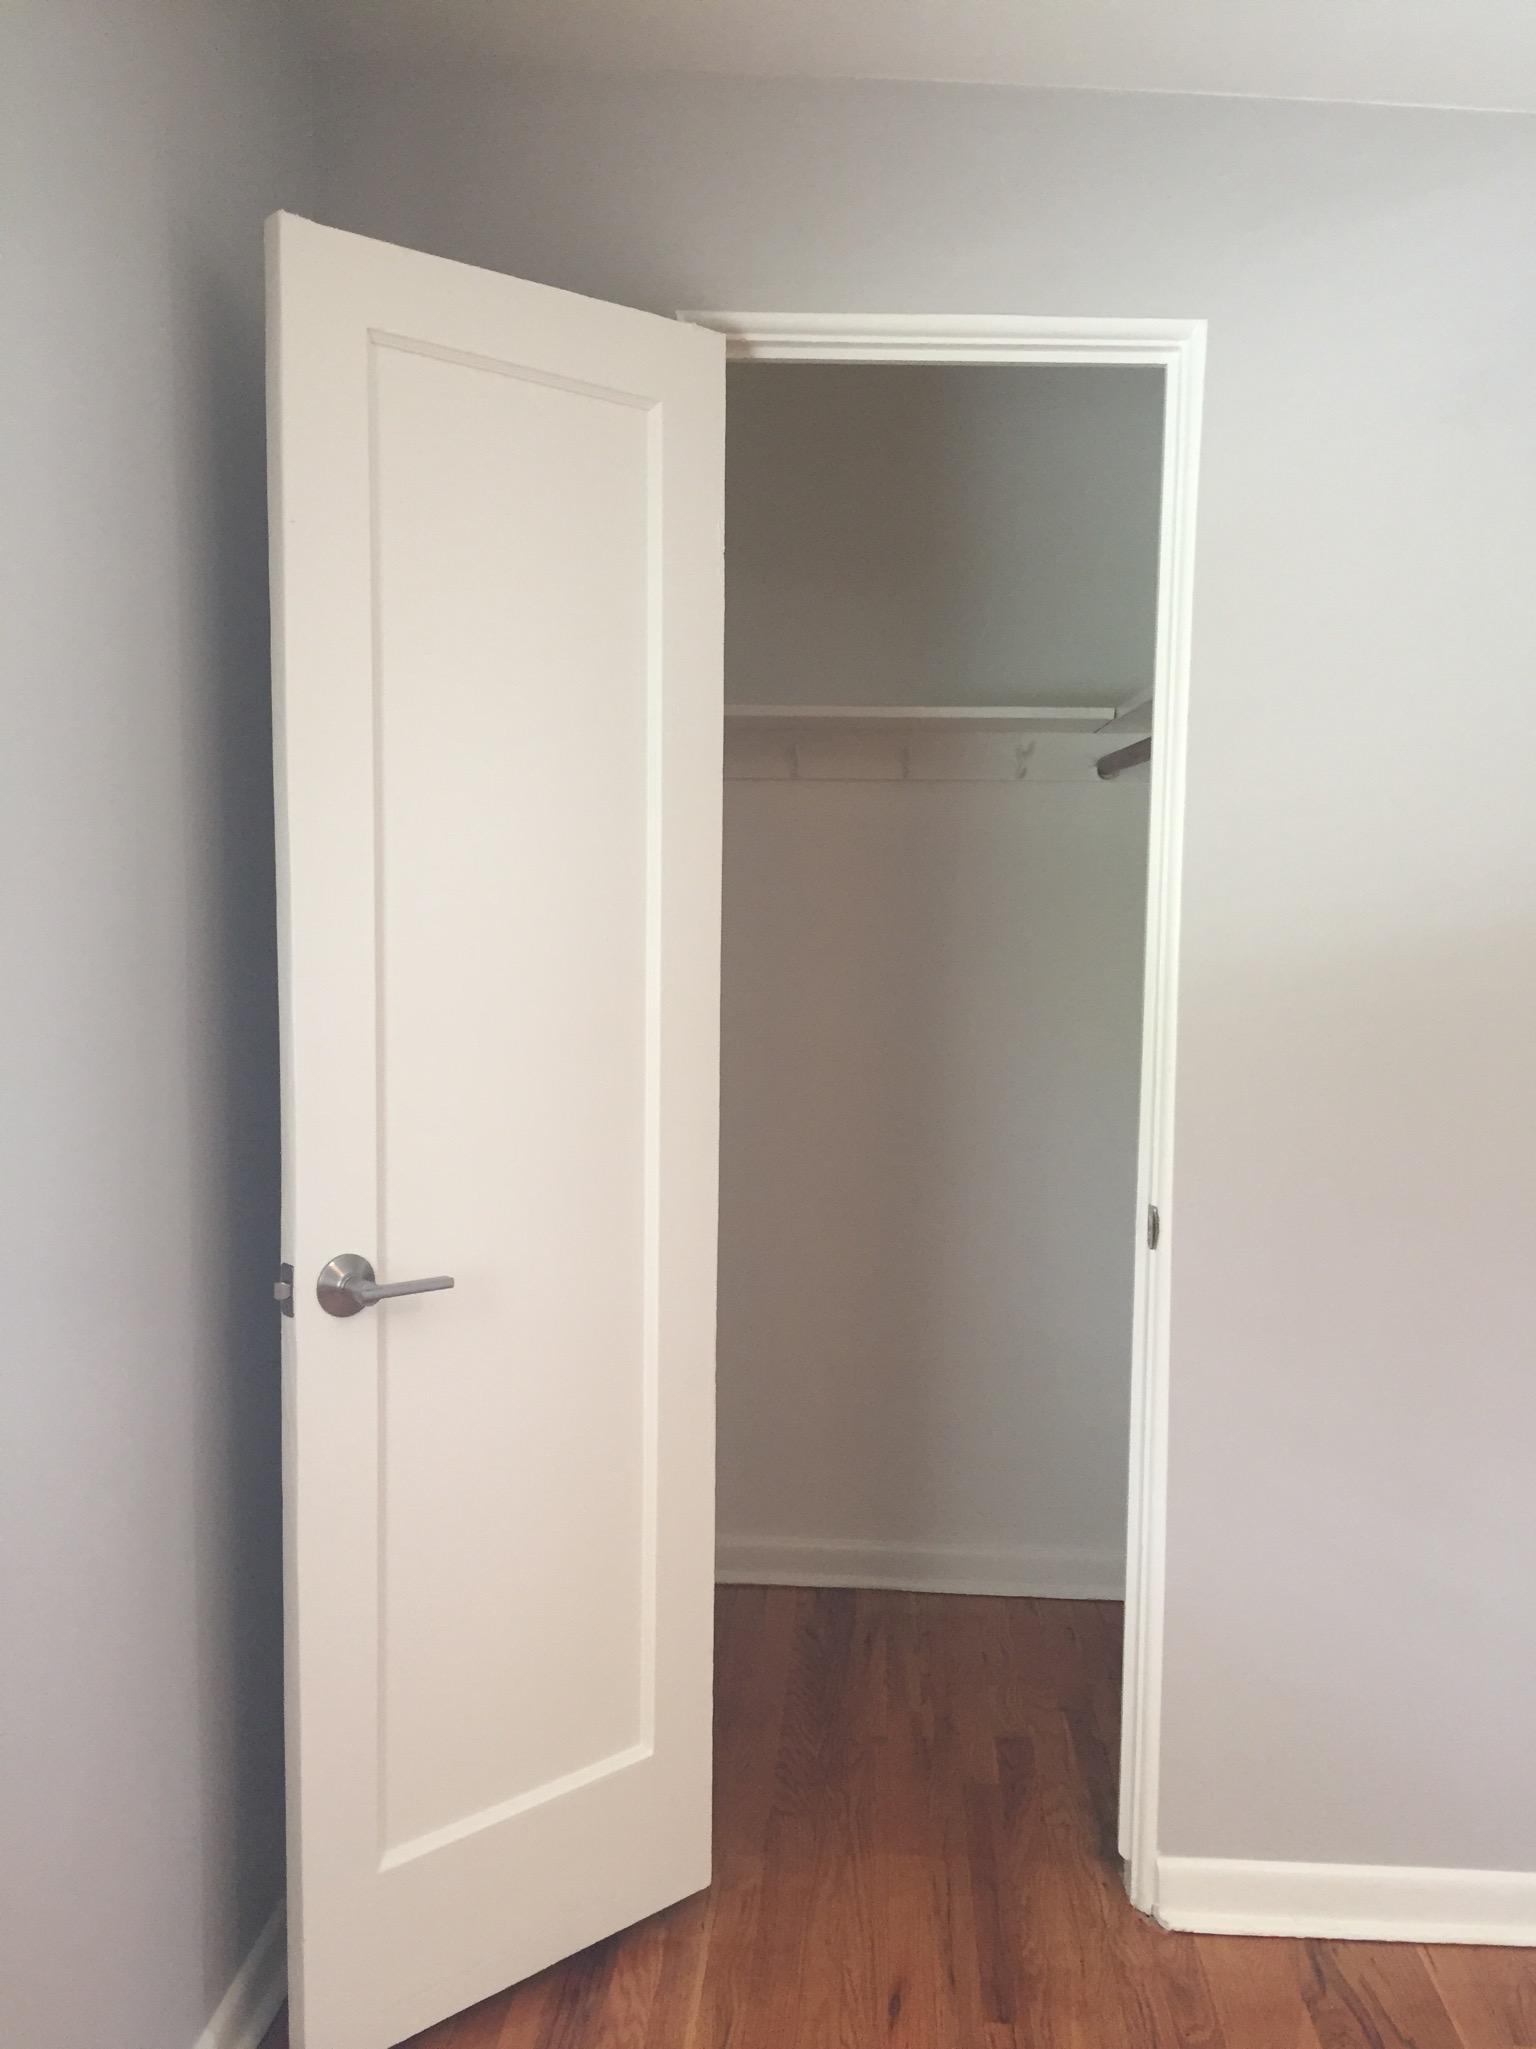 Bed One Closet.JPG